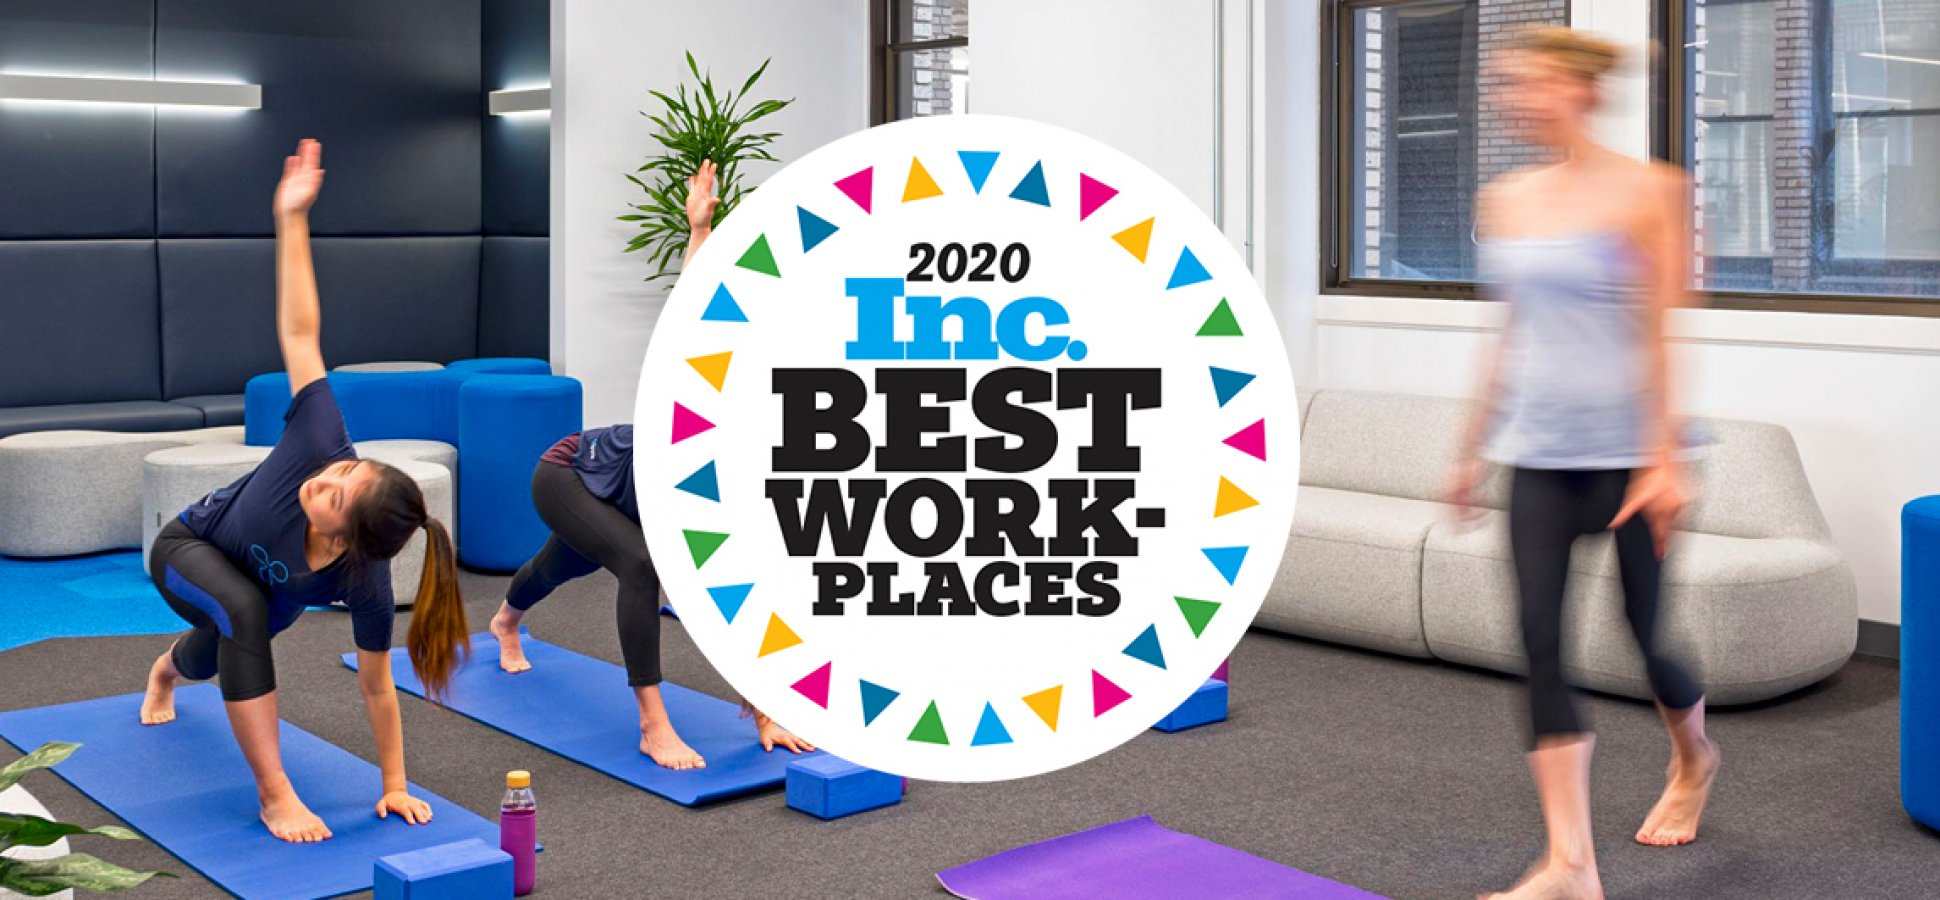 Here's Your Chance to Show Why Your Company Is One of America's Best Places to Work